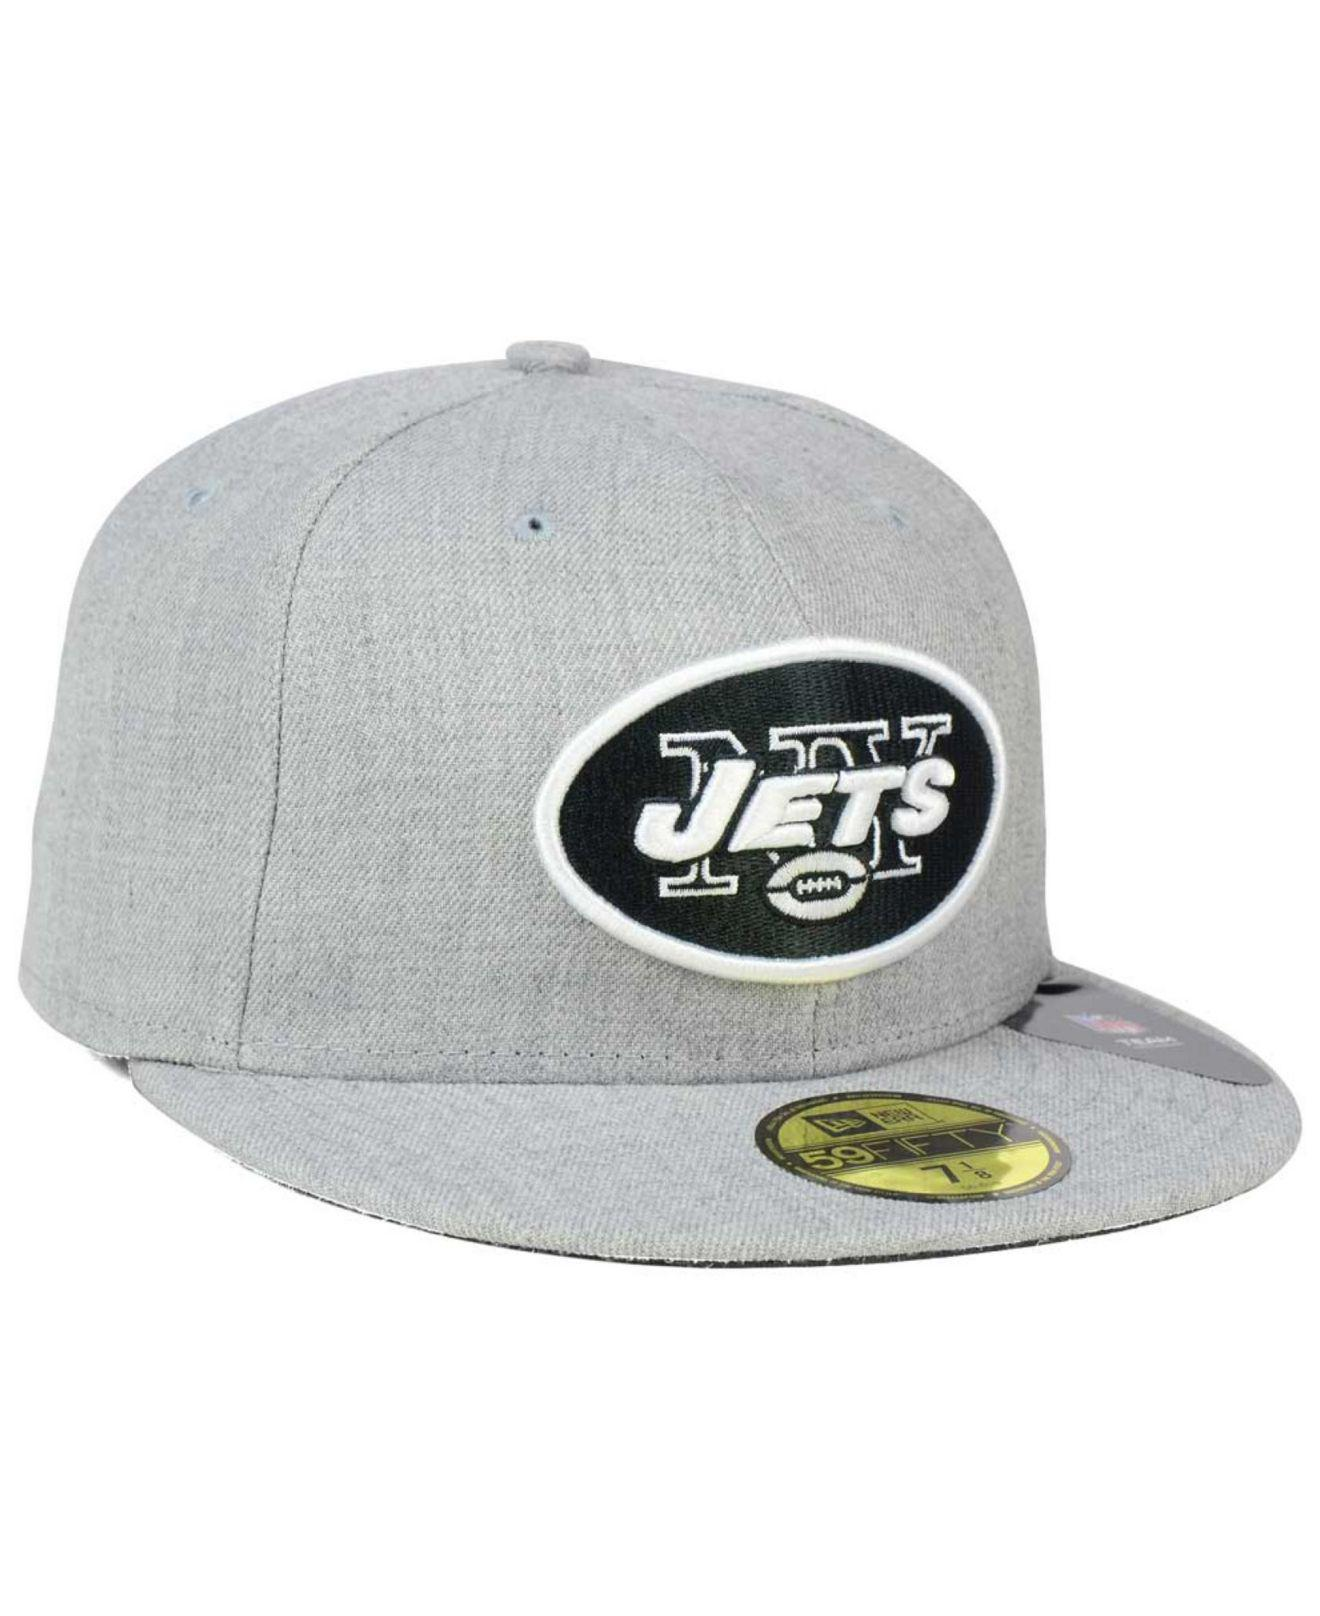 best service 268fb e68ed ... coupon code lyst ktz new york jets heather black white 59fifty cap in  gray for men